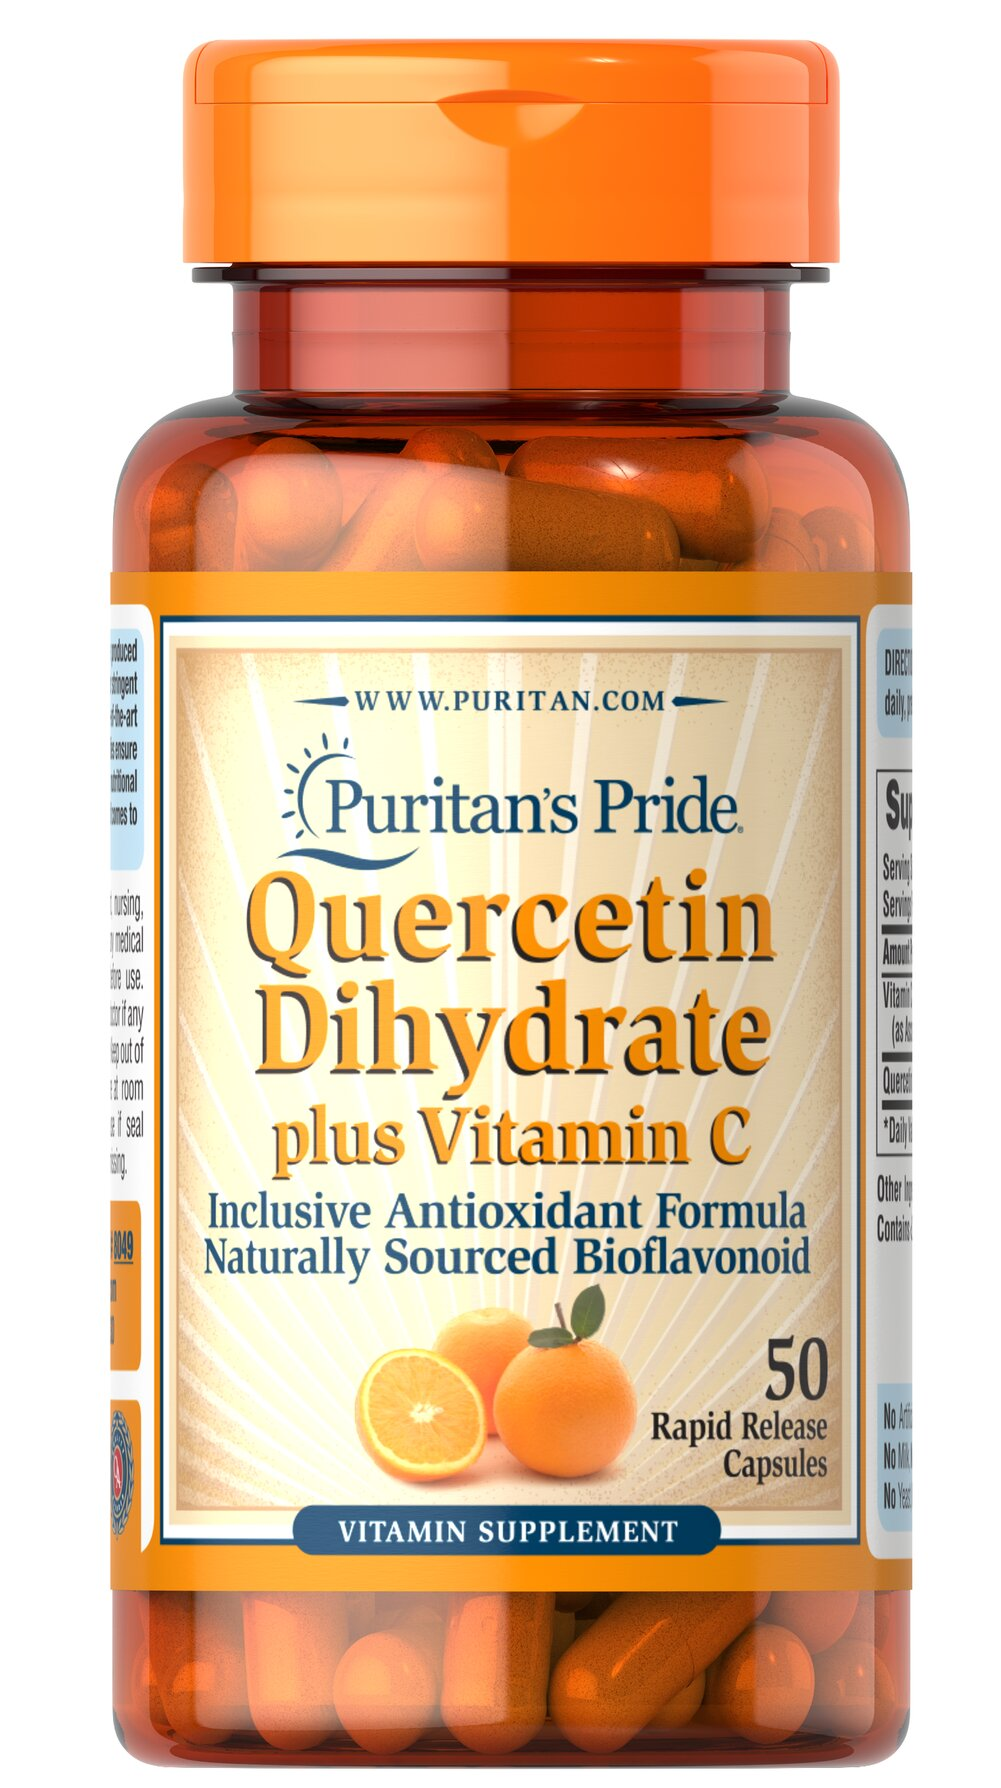 Quercetin Plus Vitamin C 250 mg/700 mg <p>Quercetin is a non-citrus bioflavonoid that possesses  beneficial antioxidant qualities.** For added support, we include Vitamin C, which has many benefits for your immune system, heart, joints and skin.** As an antioxidant, Vitamin C also helps neutralize harmful free radicals in cells.** This product contains 1400 mg Vitamin C (as Ascorbic Acid) and 500 mg Quercetin Dihydrate. Adults can take two tablets daily.</p> 50 Capsules 250 mg/700 mg